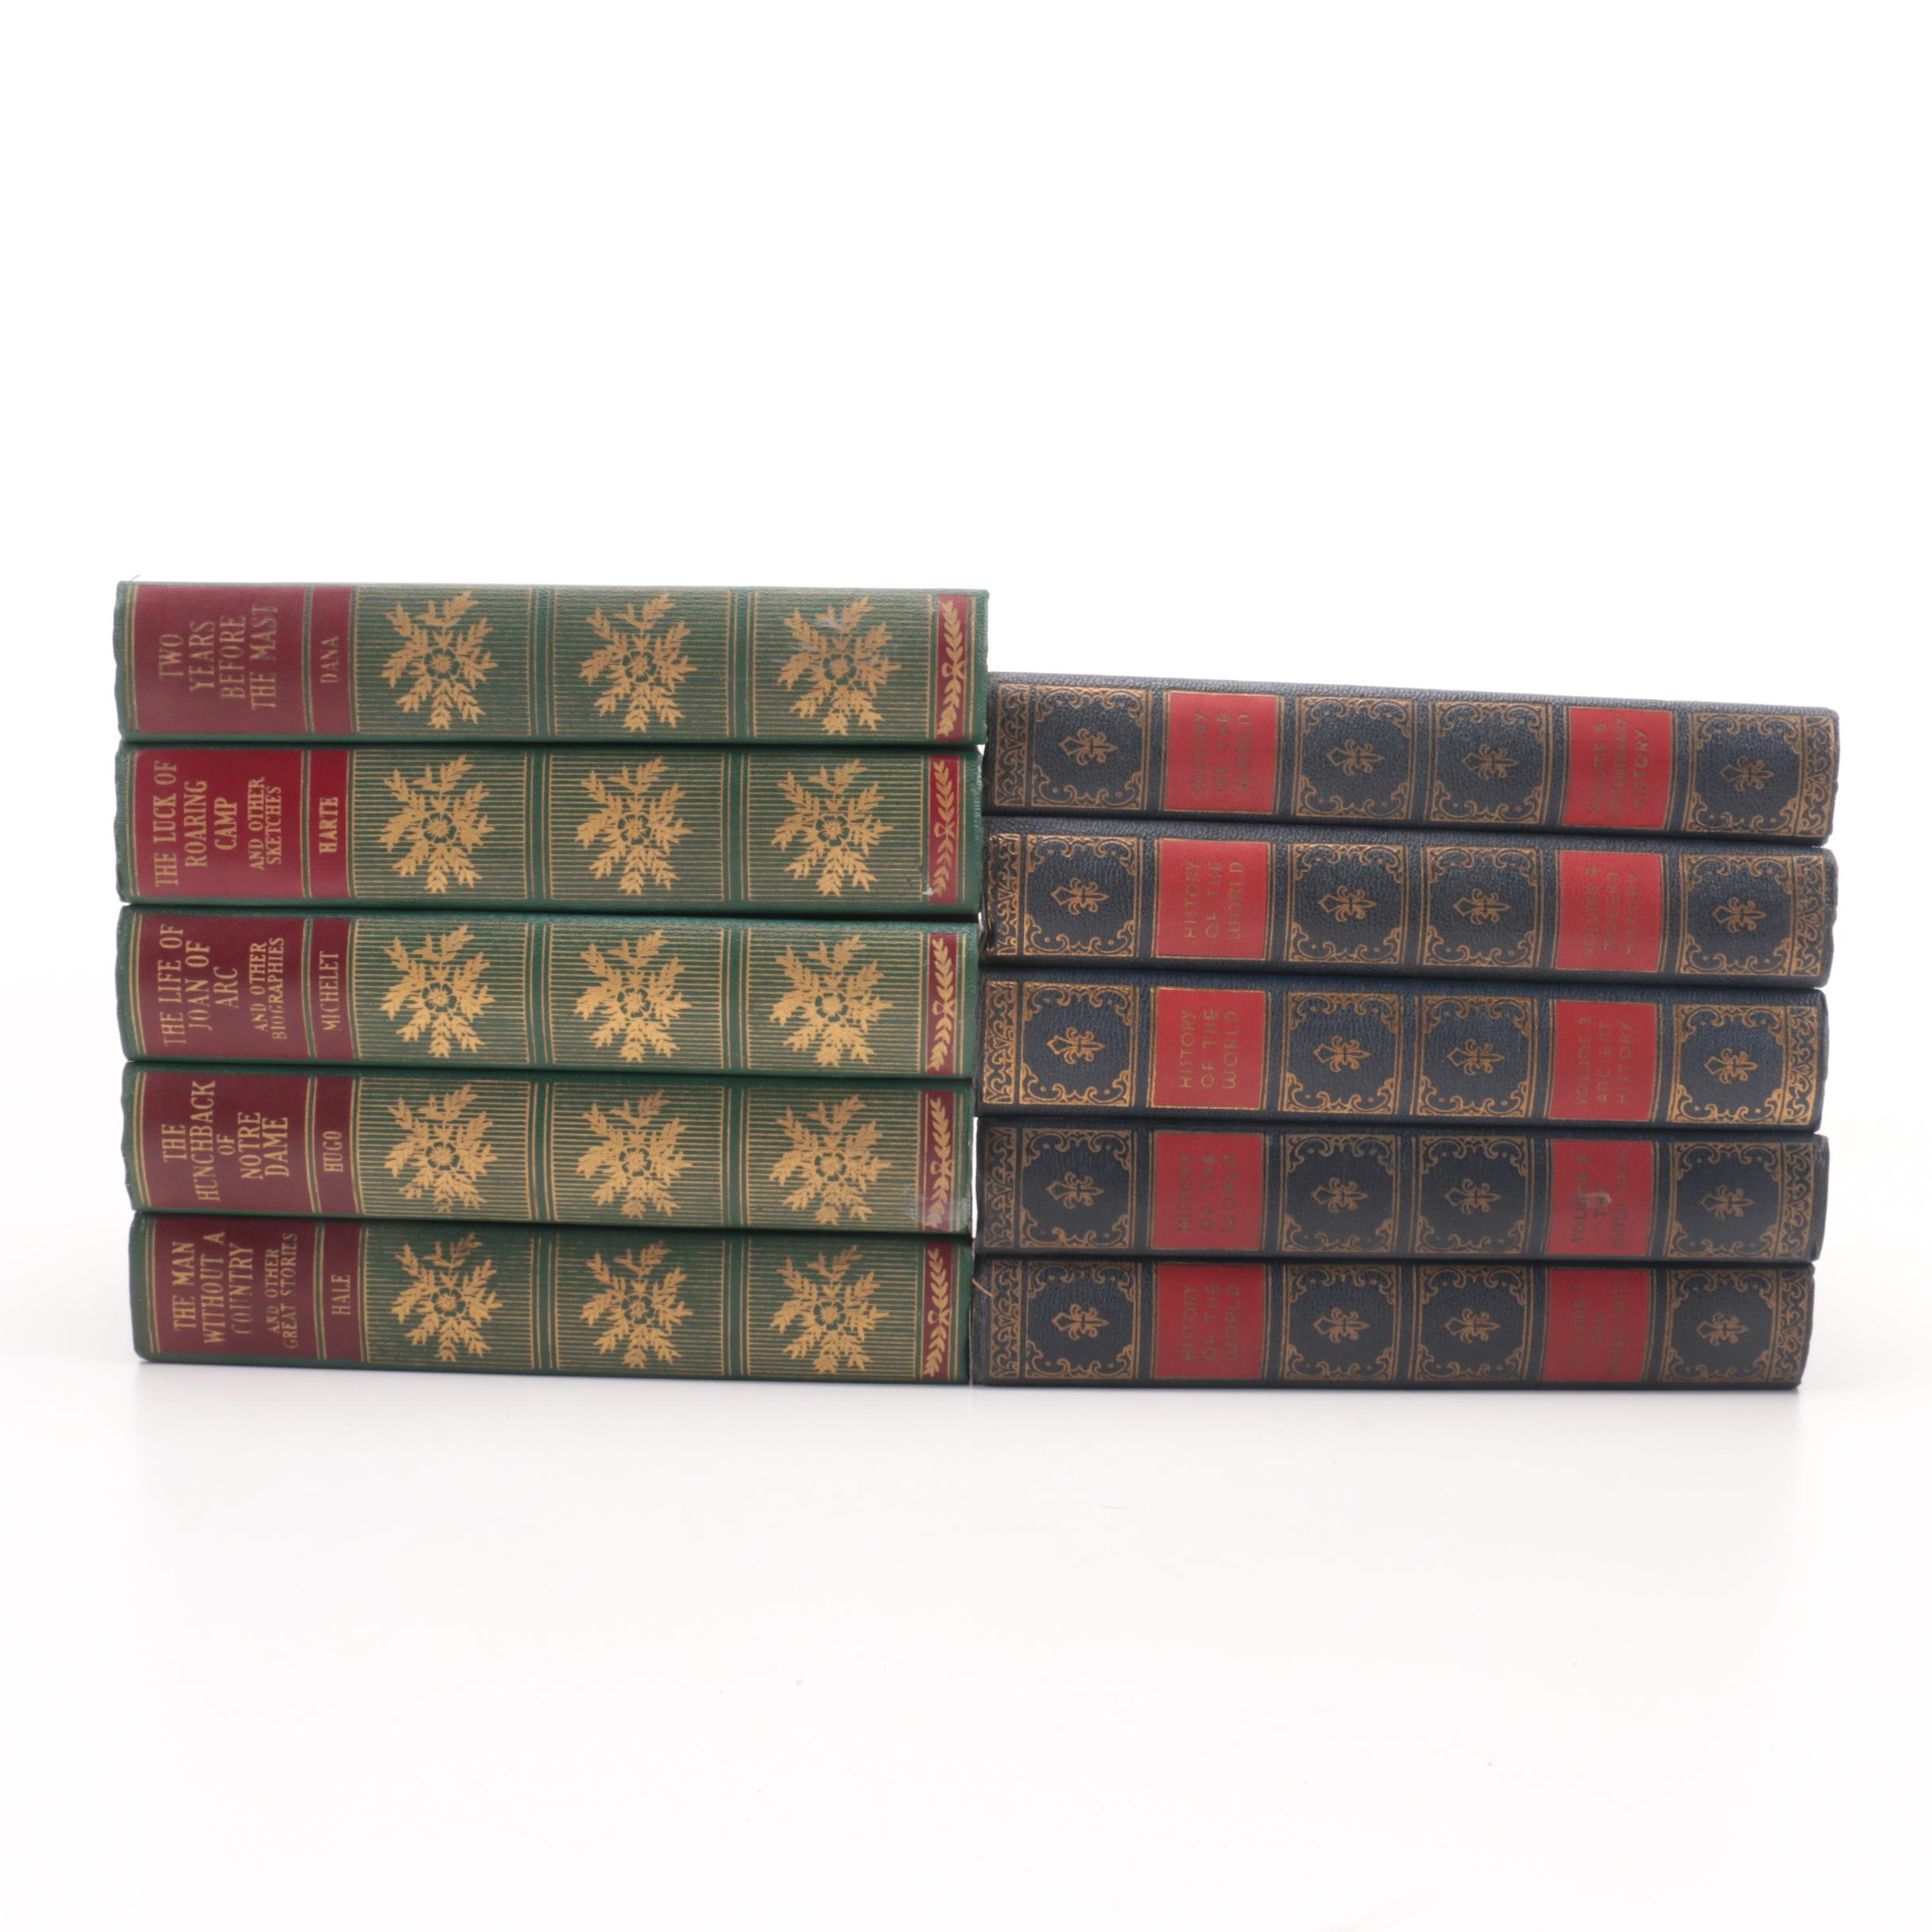 """1930s Books Including Five-Volume """"A History of the World"""" by Clement Wood and Victor Duruy"""